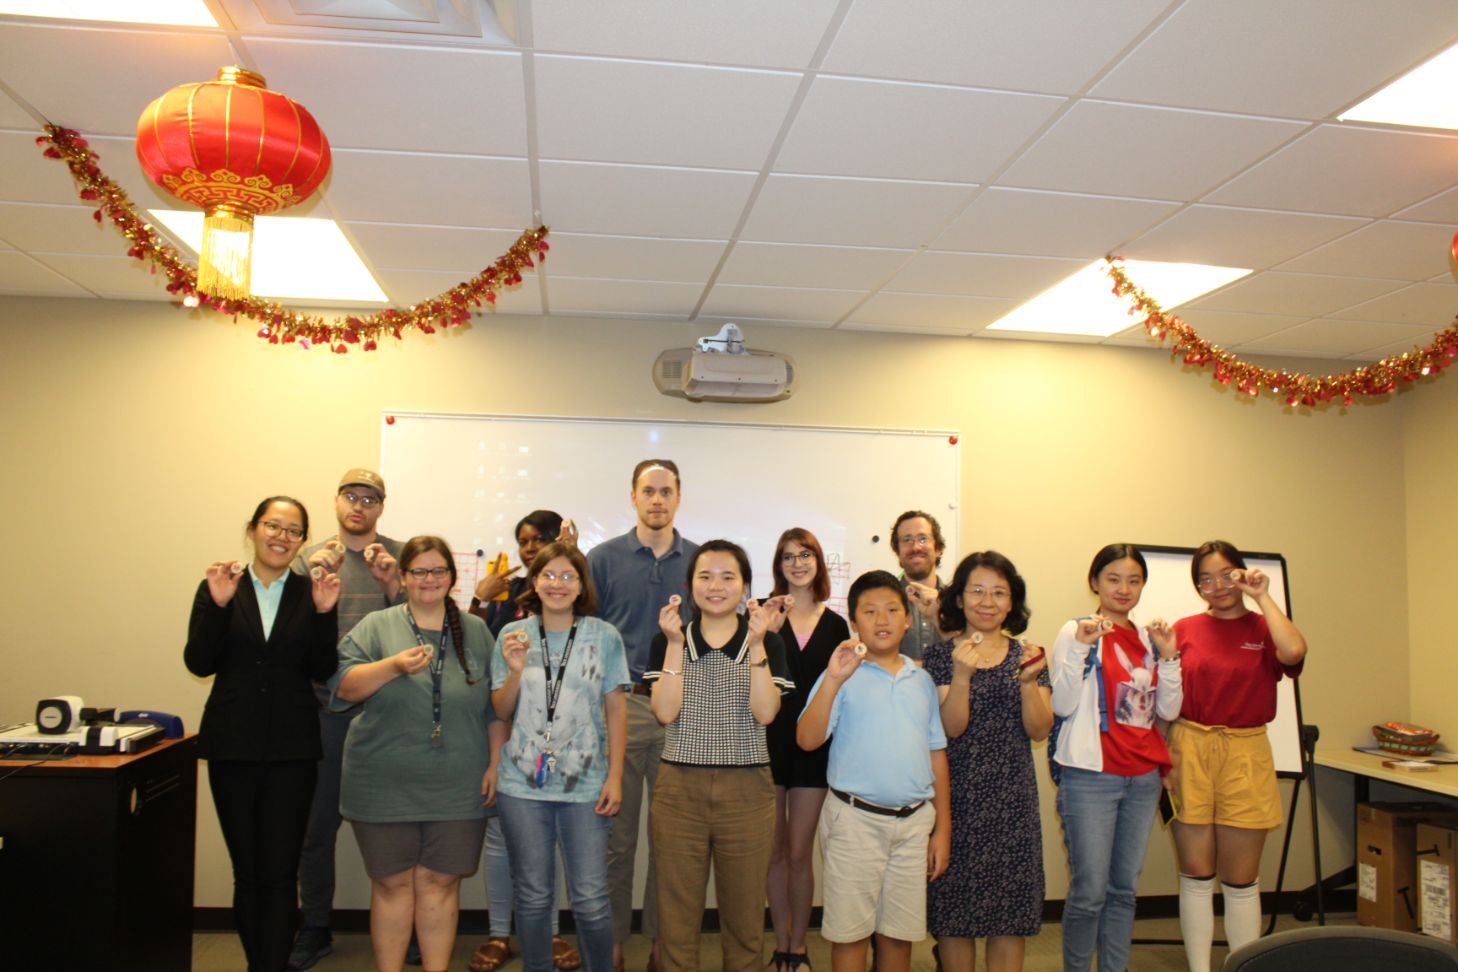 The students and CIT staff pose together with Chinese chess pieces in a group picture.